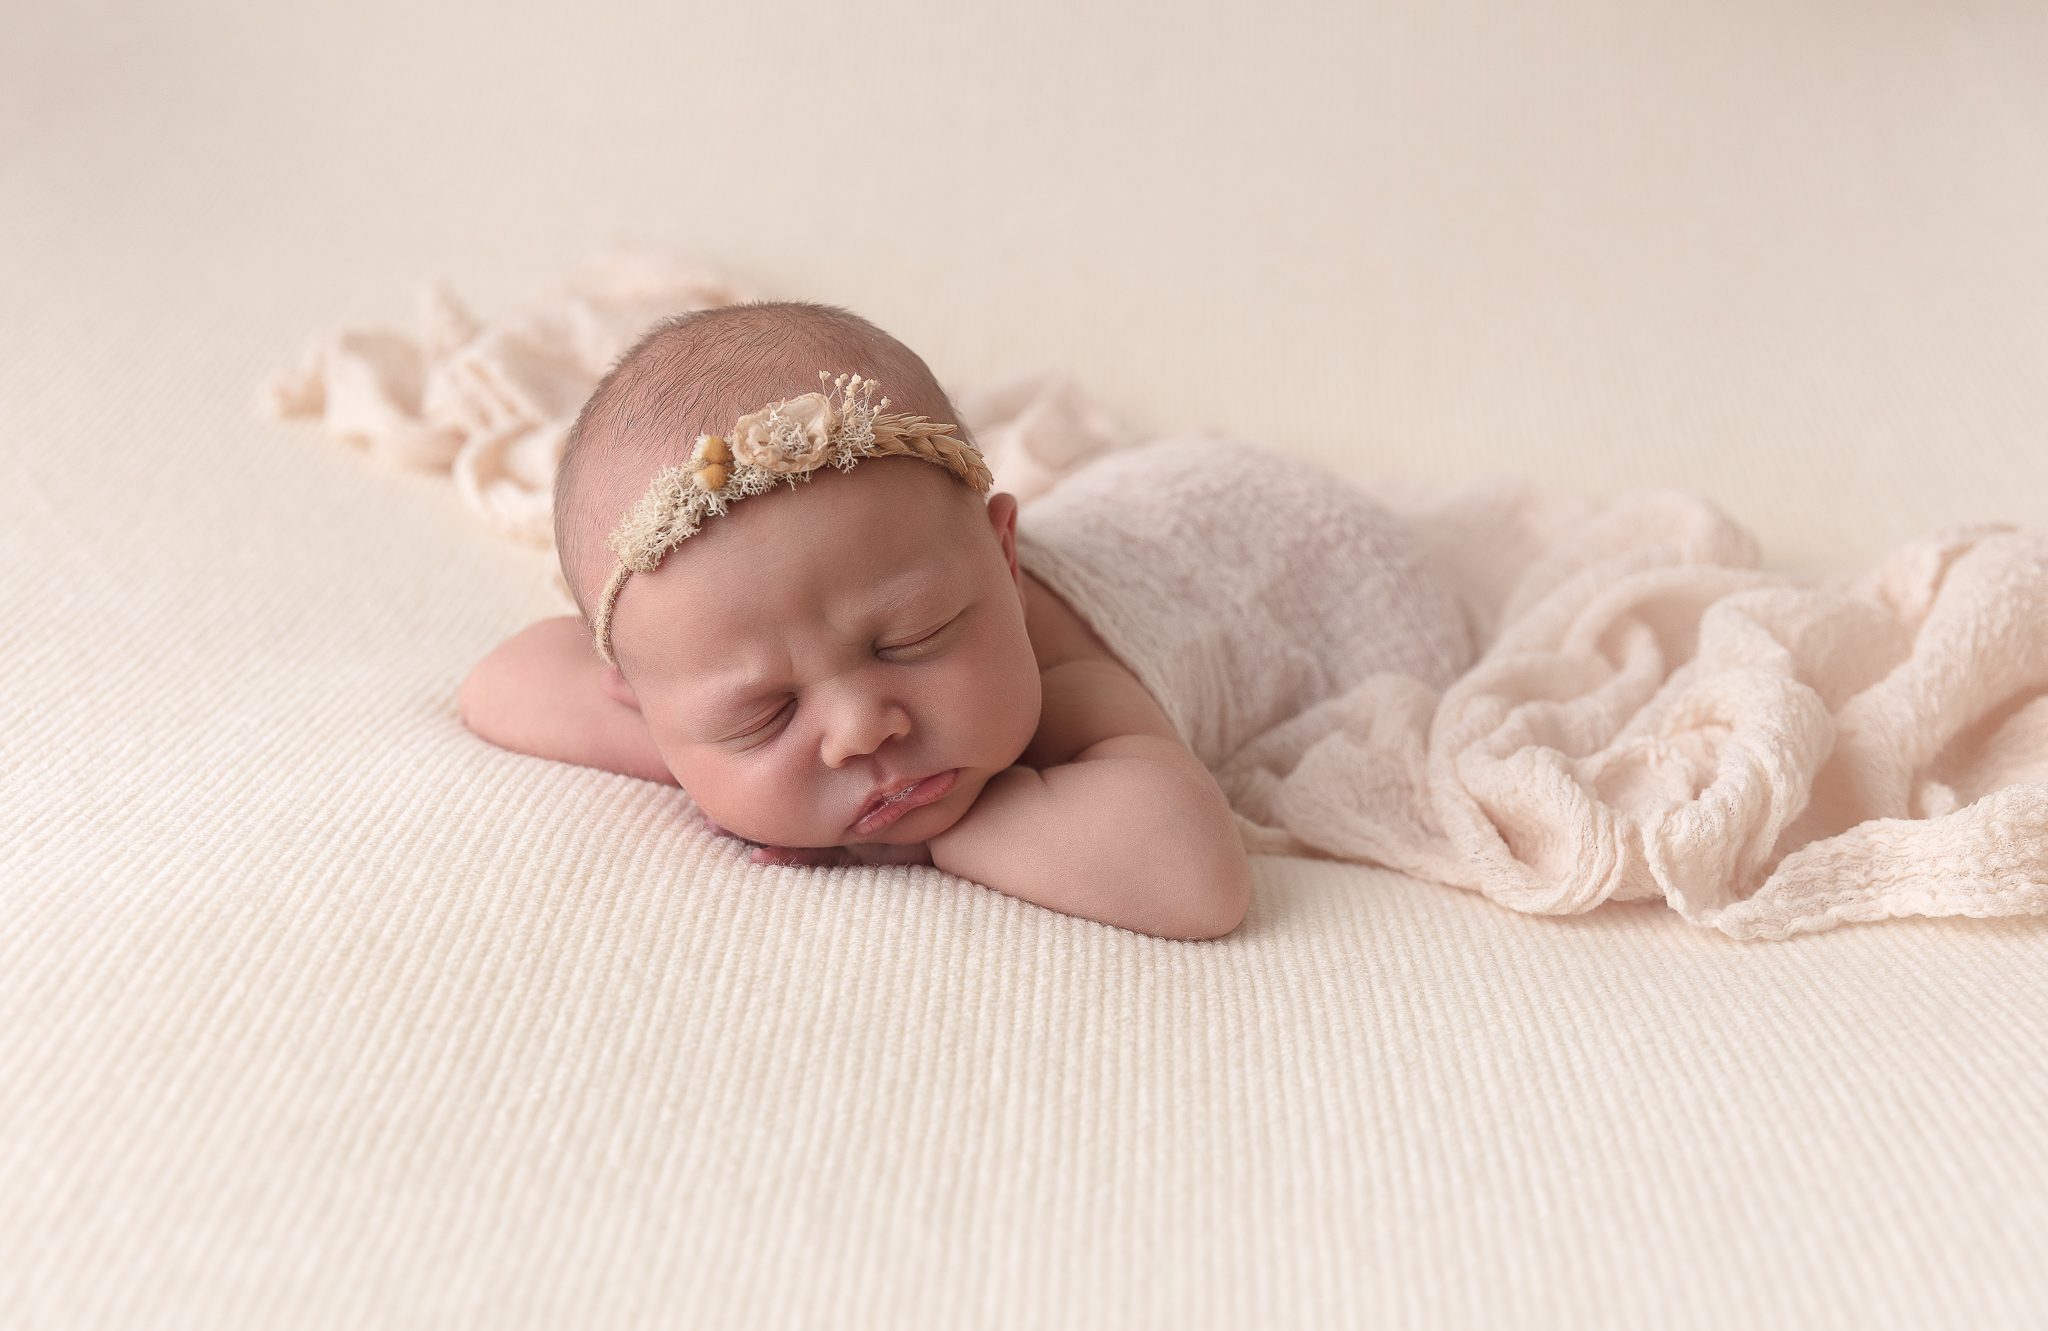 newborn-photography-adelaide-jcimagery